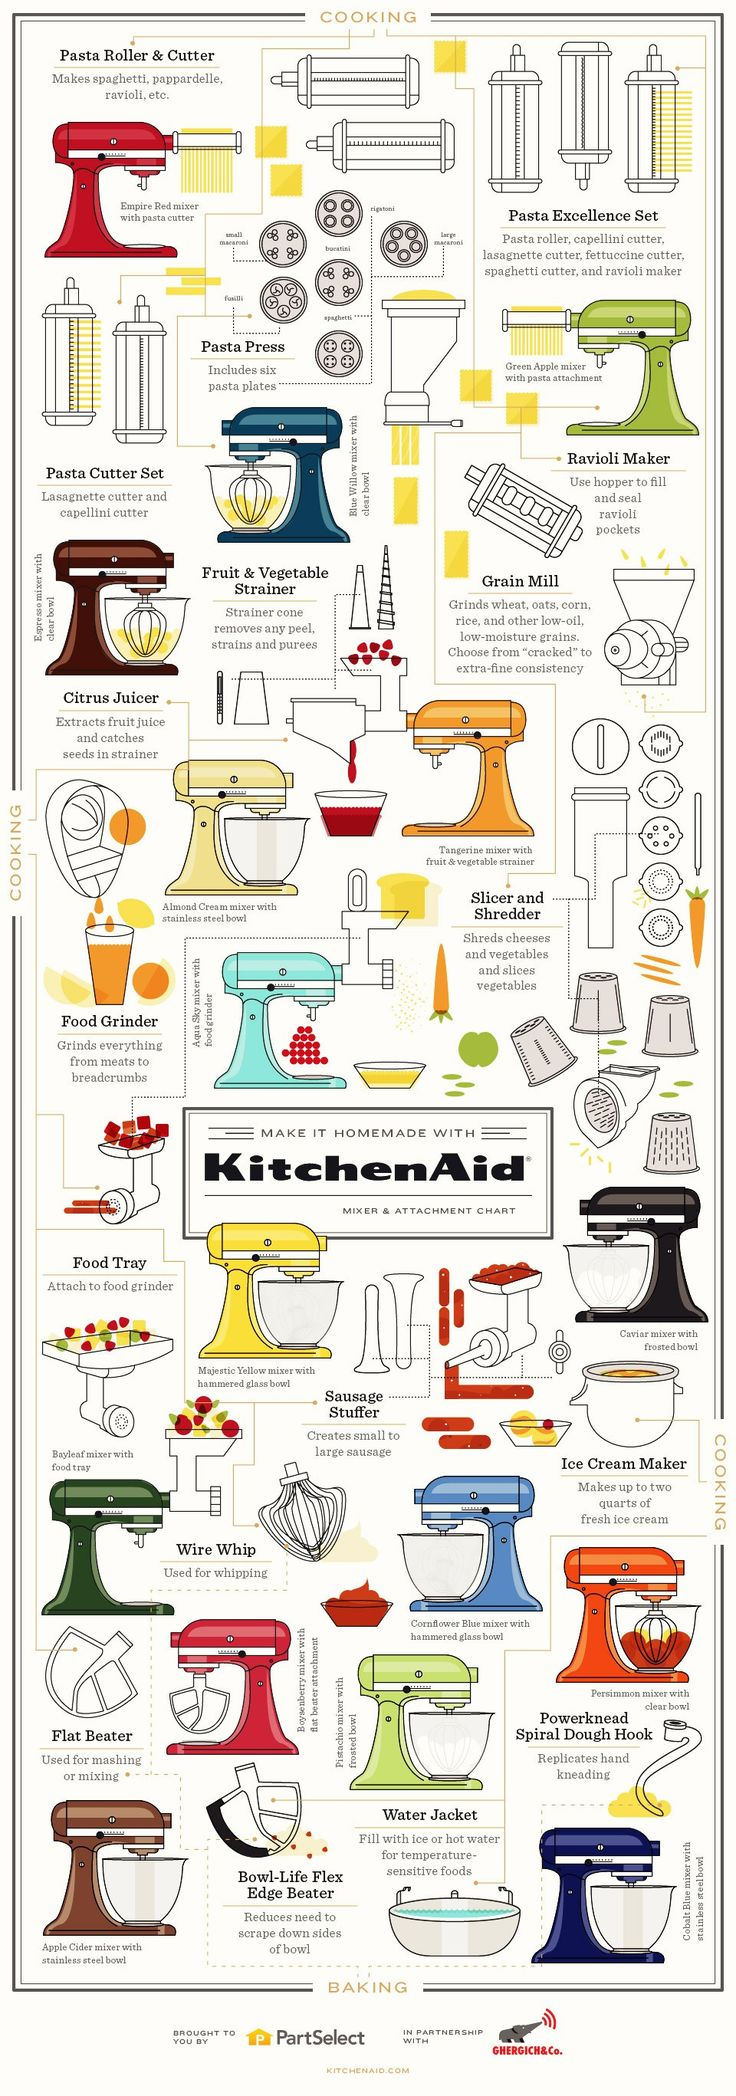 Kitchenaid Attachments Best 25 Kitchenaid Stand Mixer Attachments Ideas On Pinterest